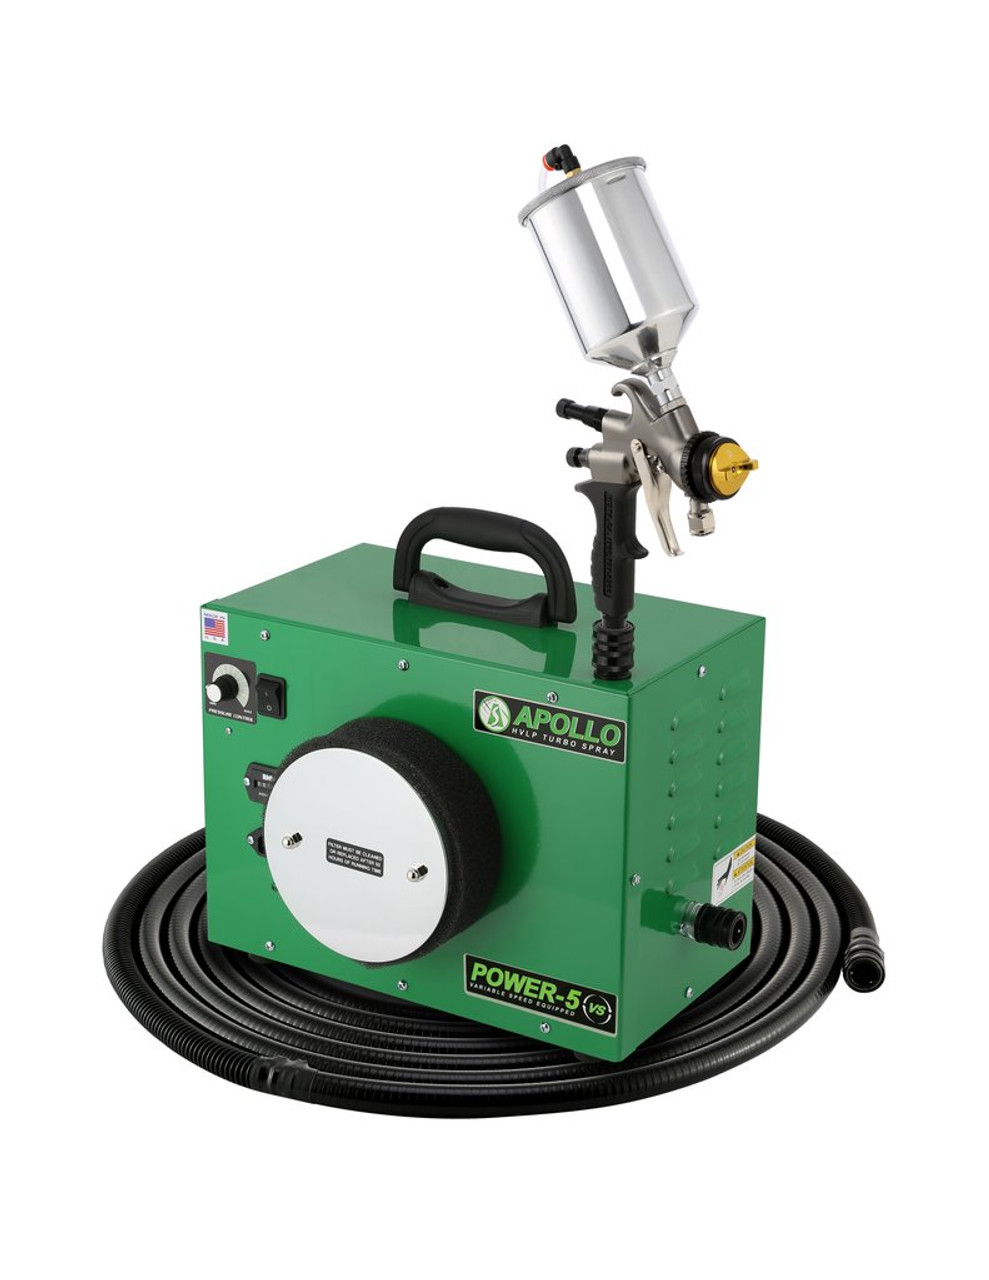 Apollo - 5-stage POWER 5 VS; 110 volt motor with 32' air flex hose and A7700GT-600 spray gun and A5034A 600cc Gravity Feed cup (5VS1107700GT600)